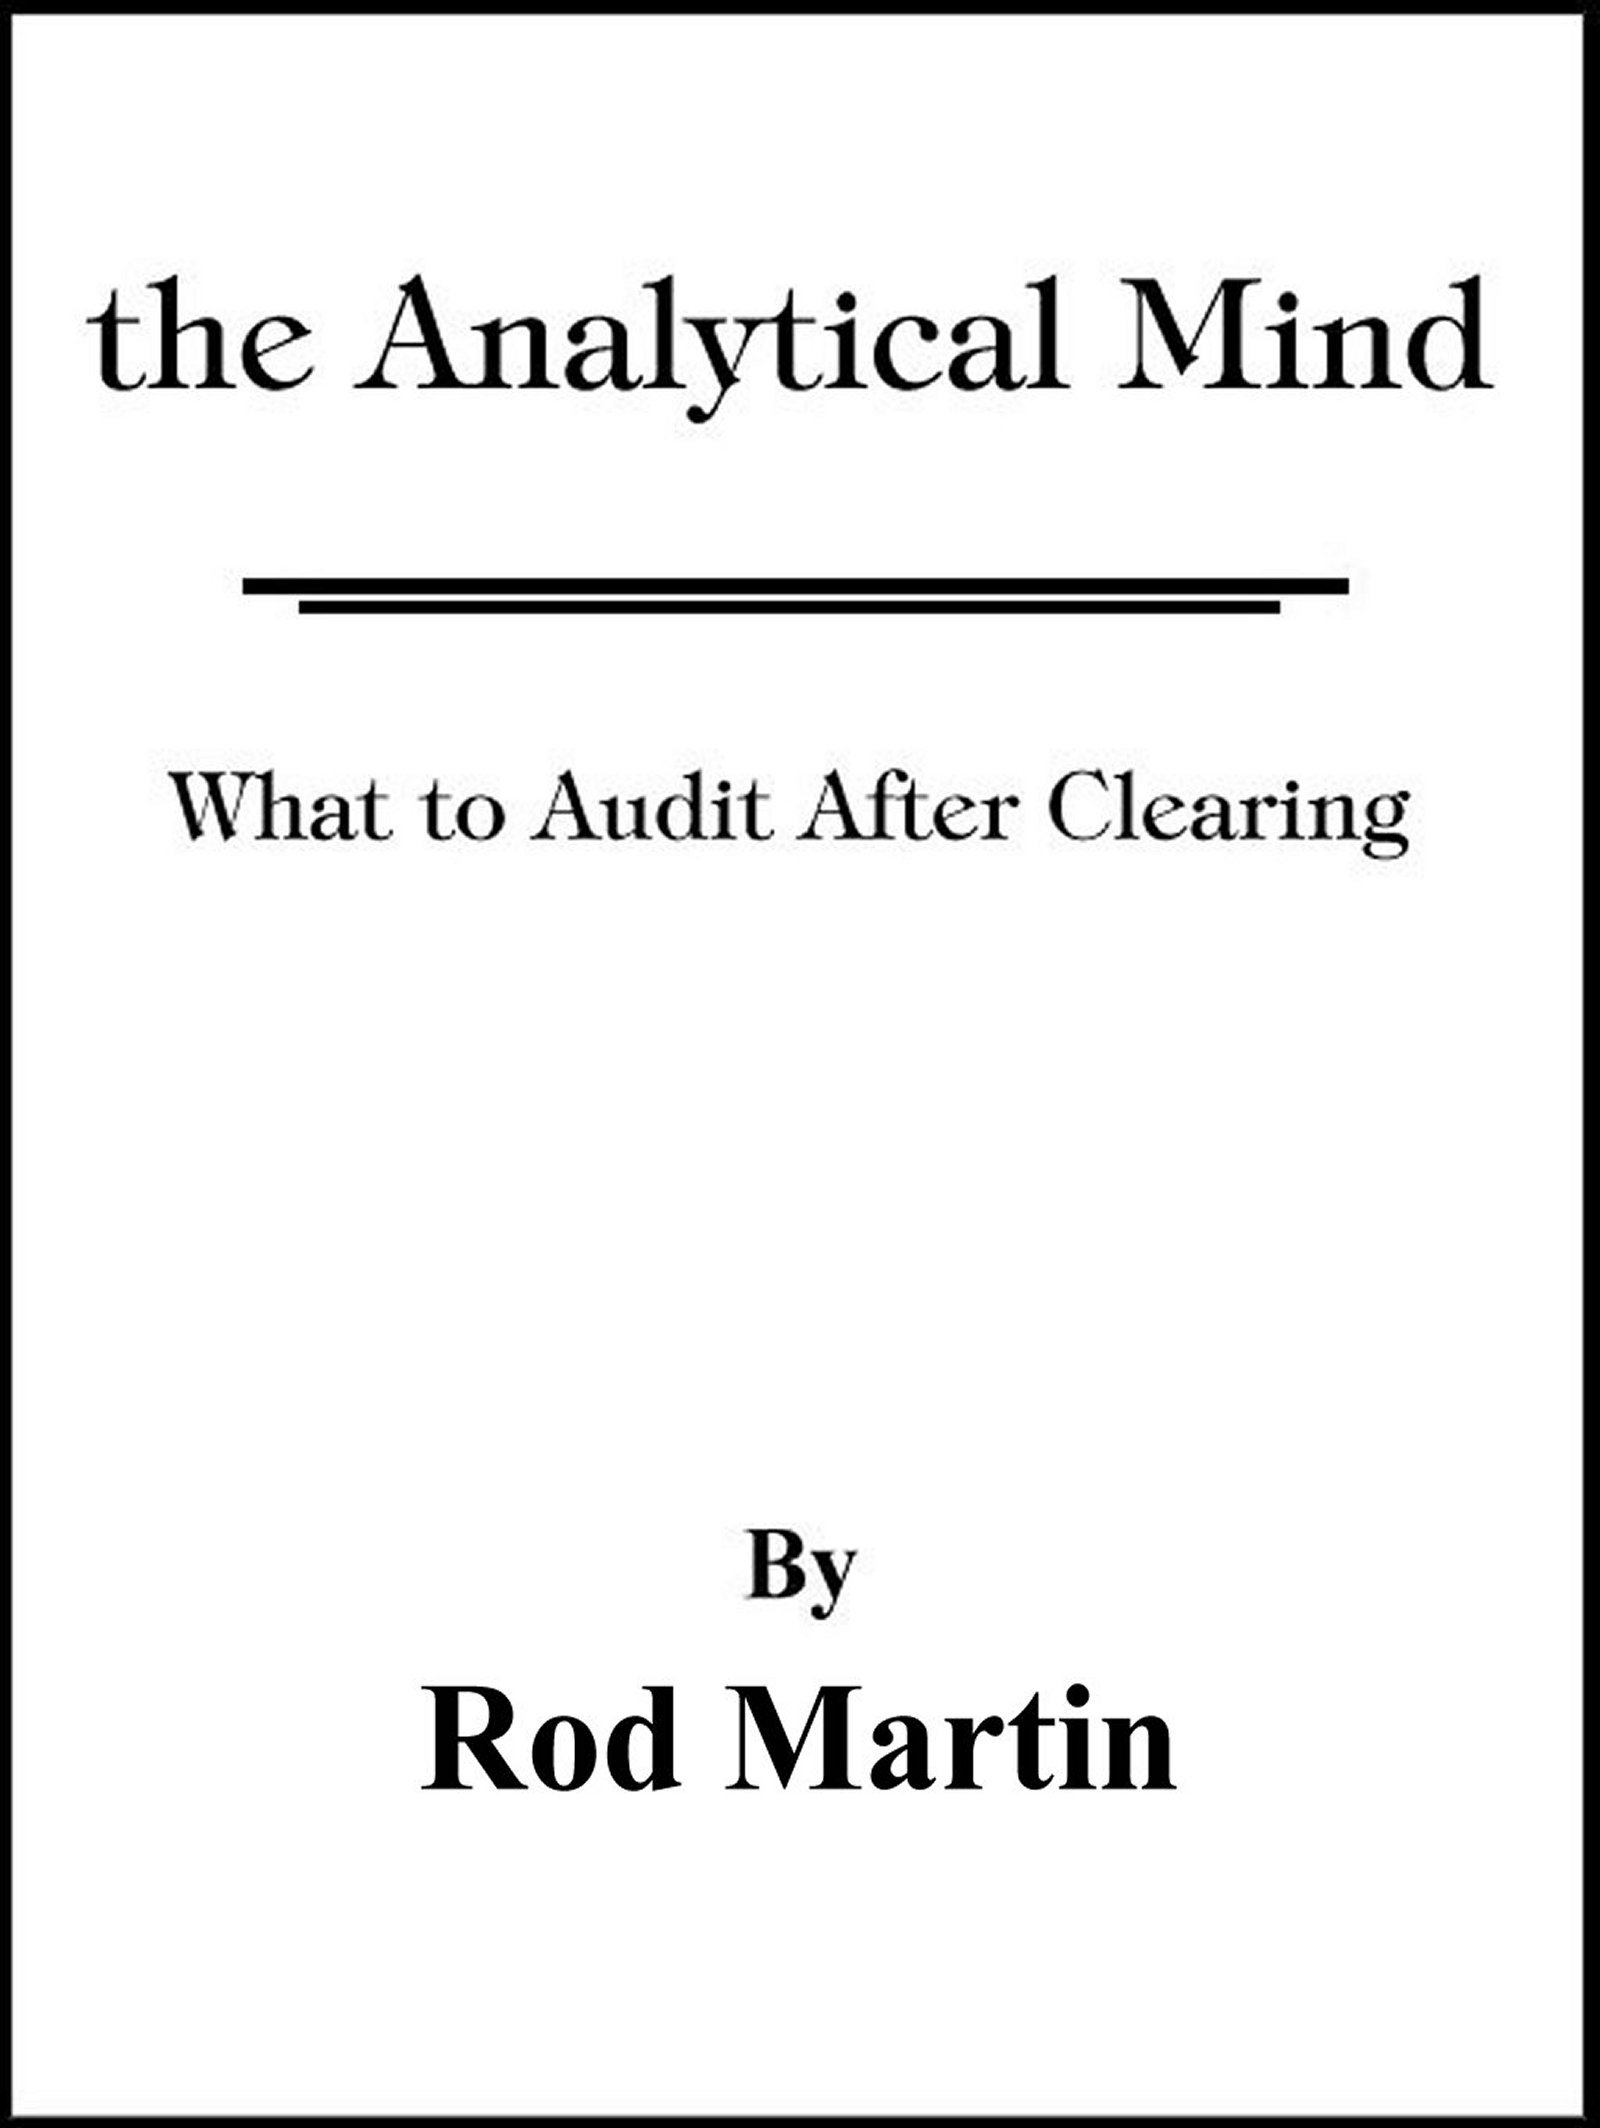 The Analytical Mind